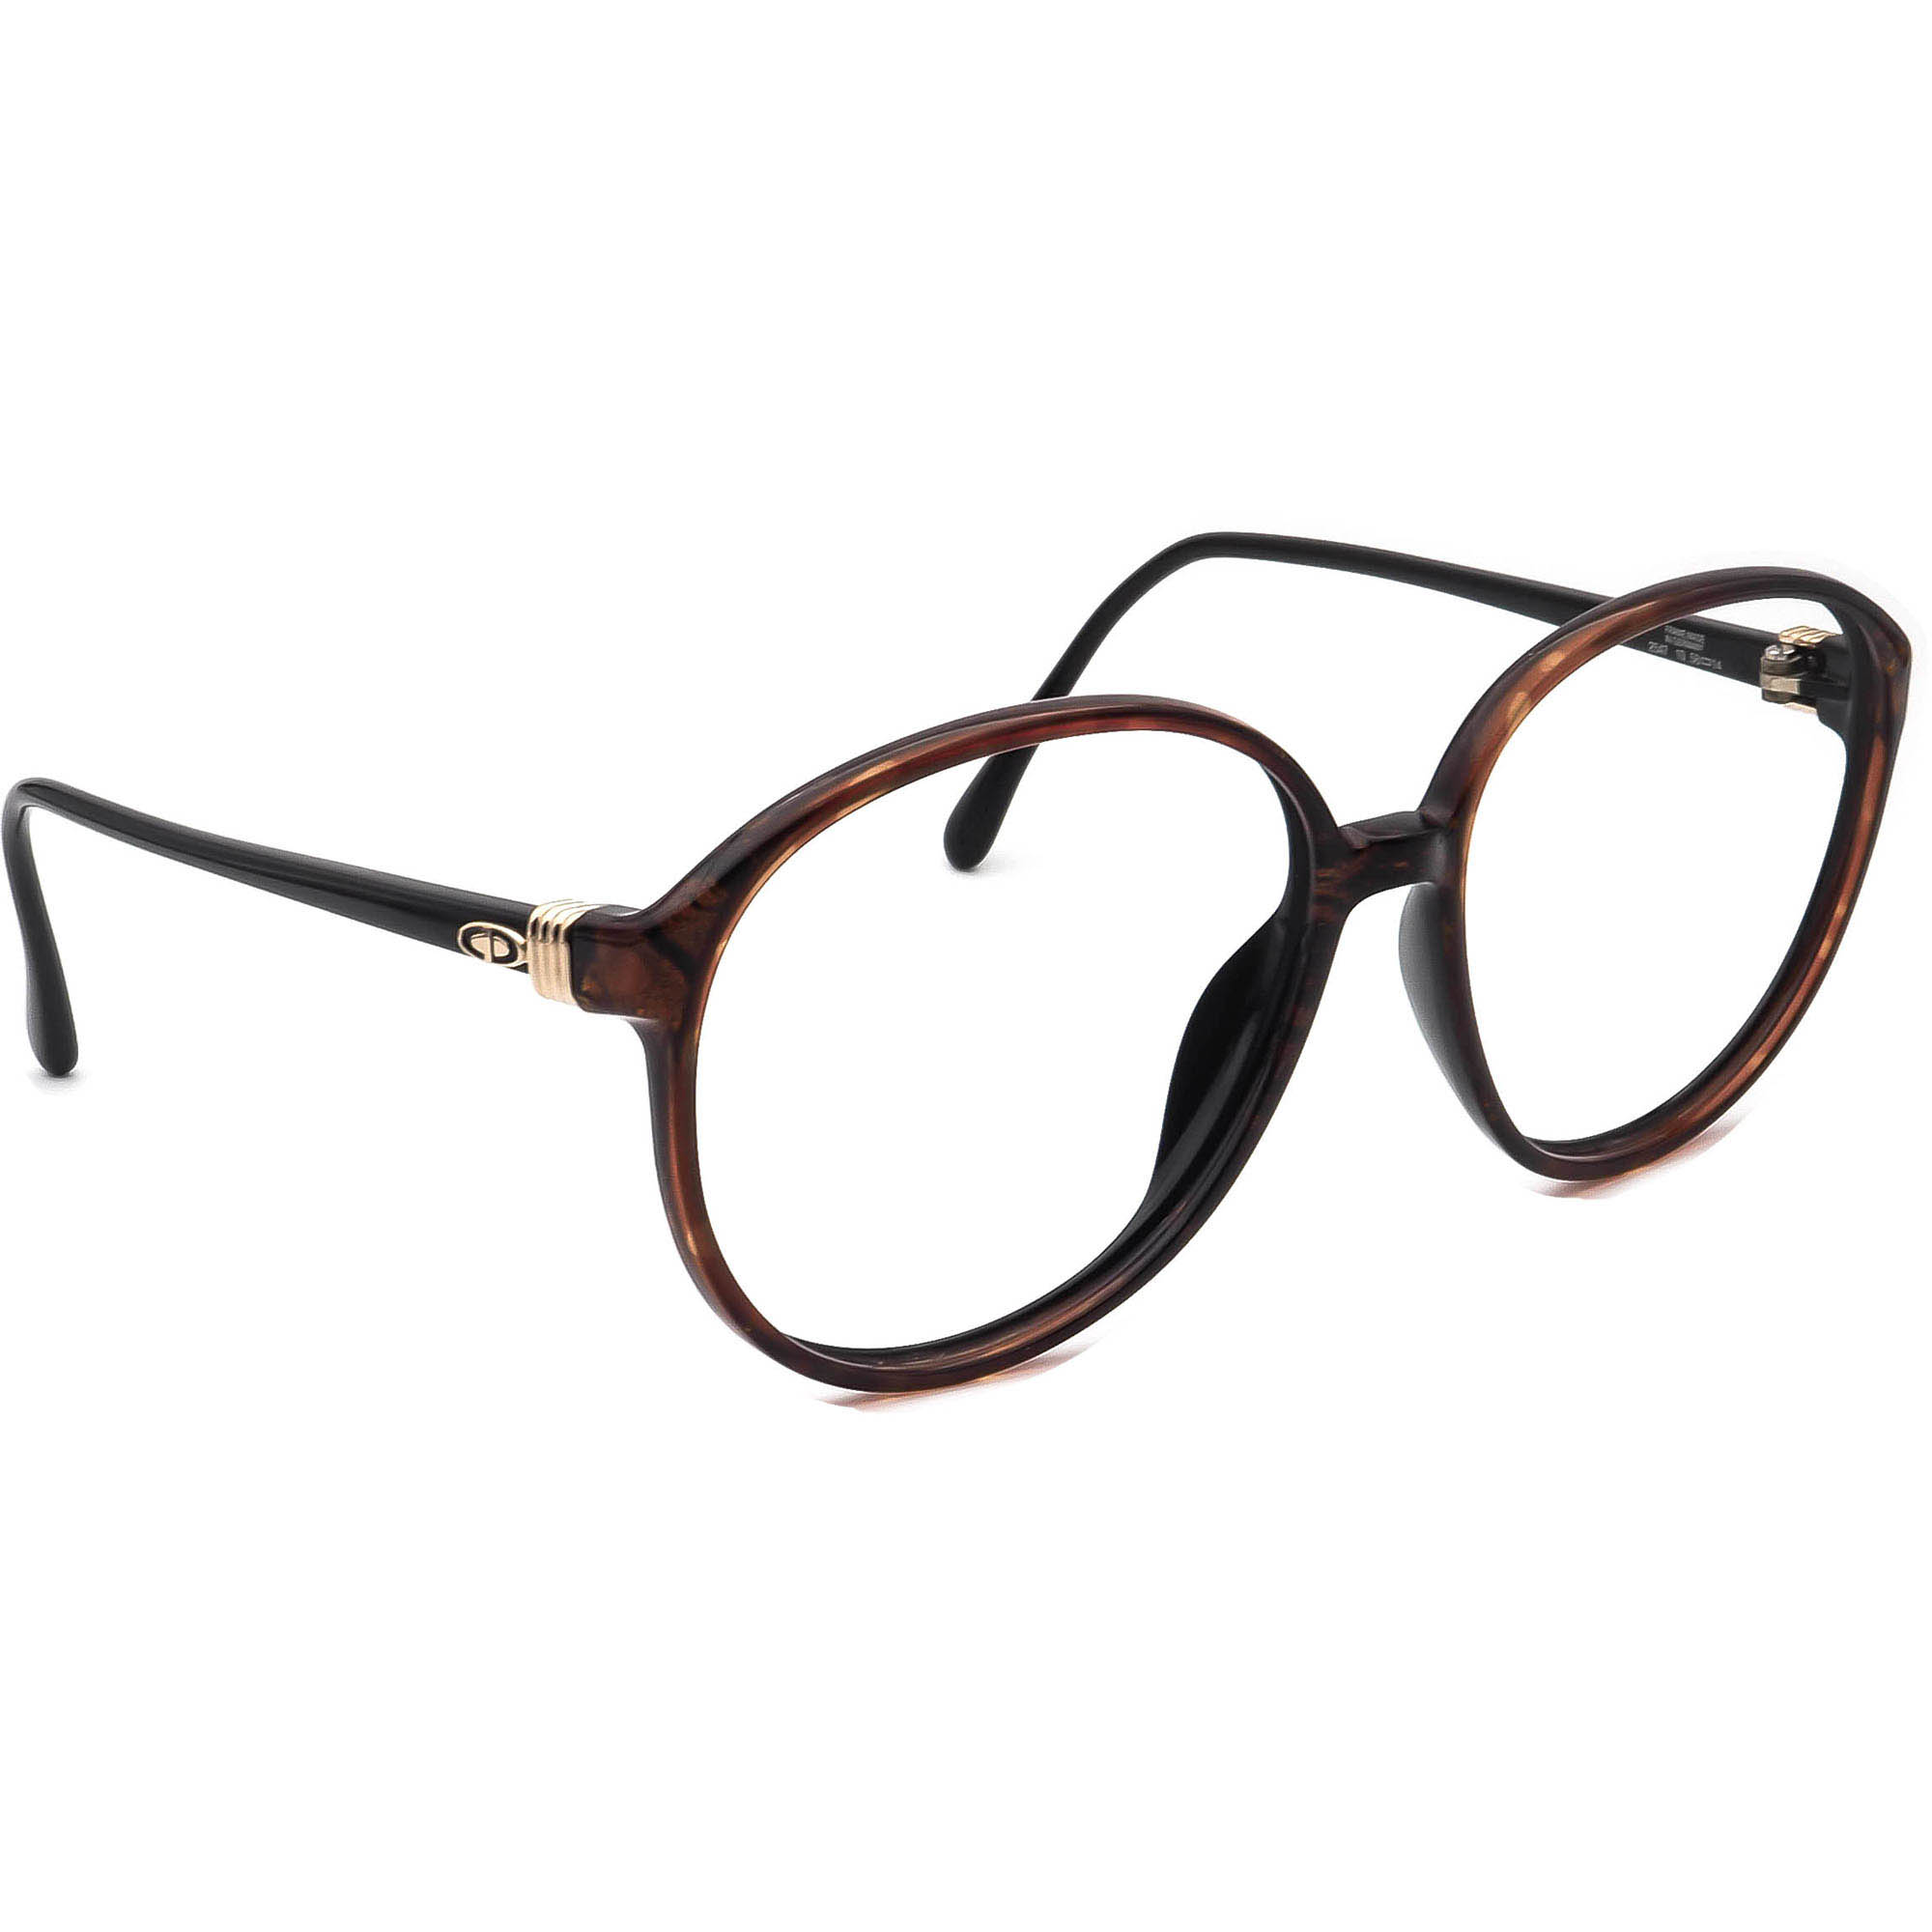 Christian Dior CD 2547 10  Sunglasses Frame Only